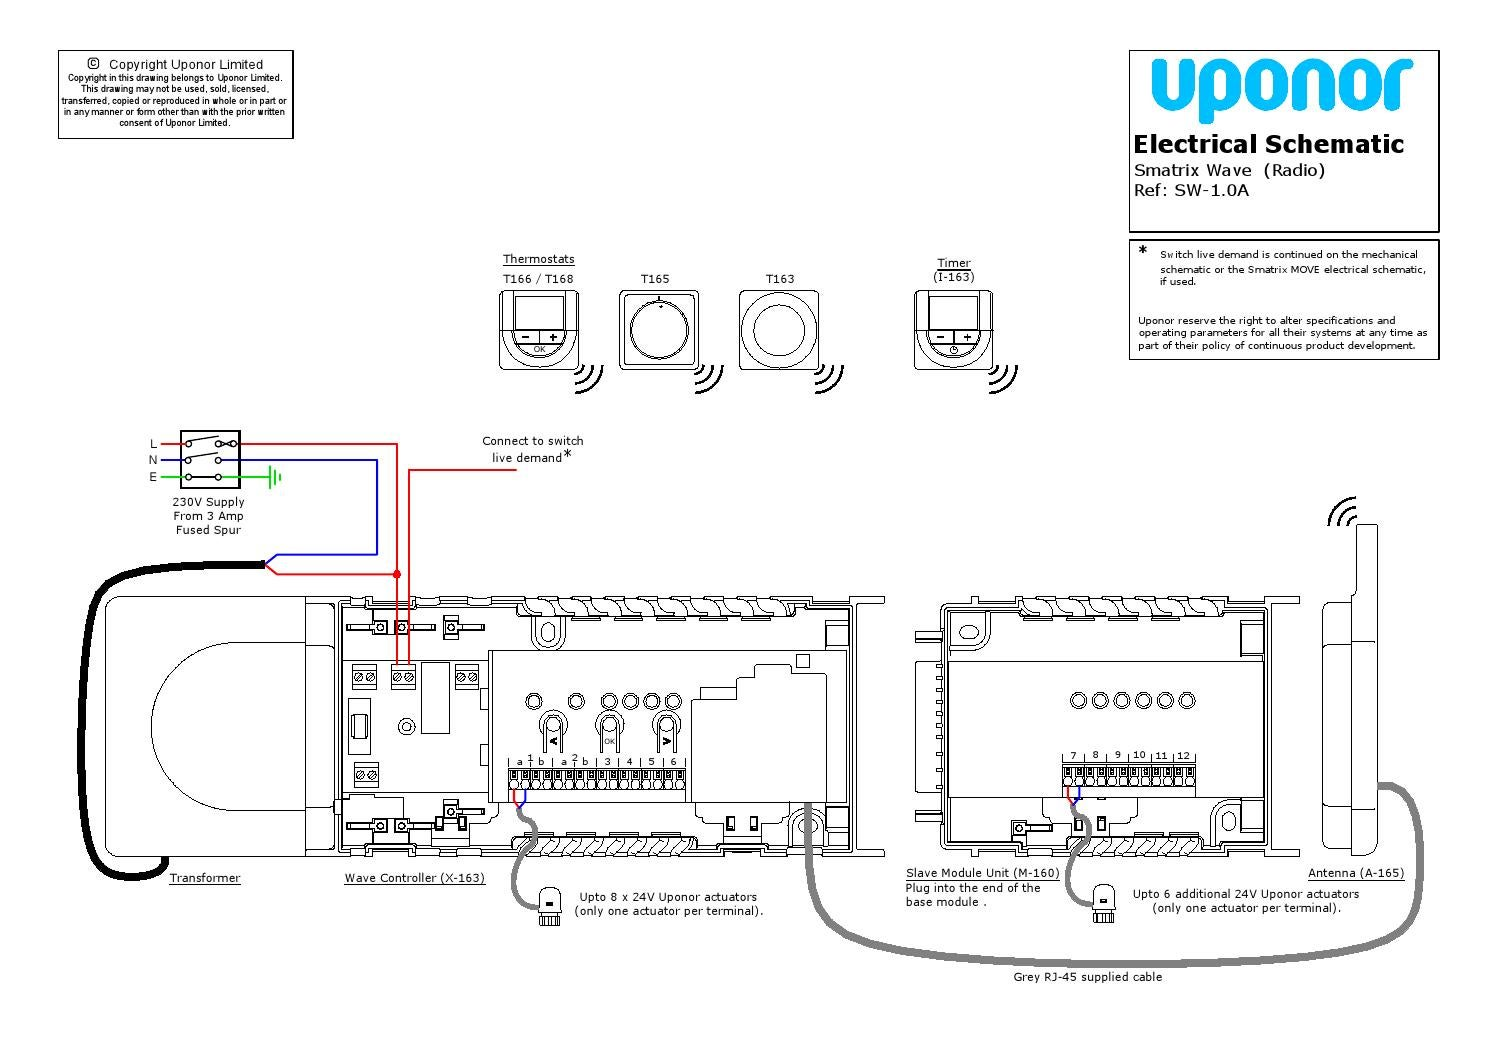 Uponor wiring diagram illustration of wiring diagram smatrix wave by uponor uk issuu rh issuu com uponor c35 wiring diagram uponor wiring centre diagram wiring diagram electric underfloor heating asfbconference2016 Image collections